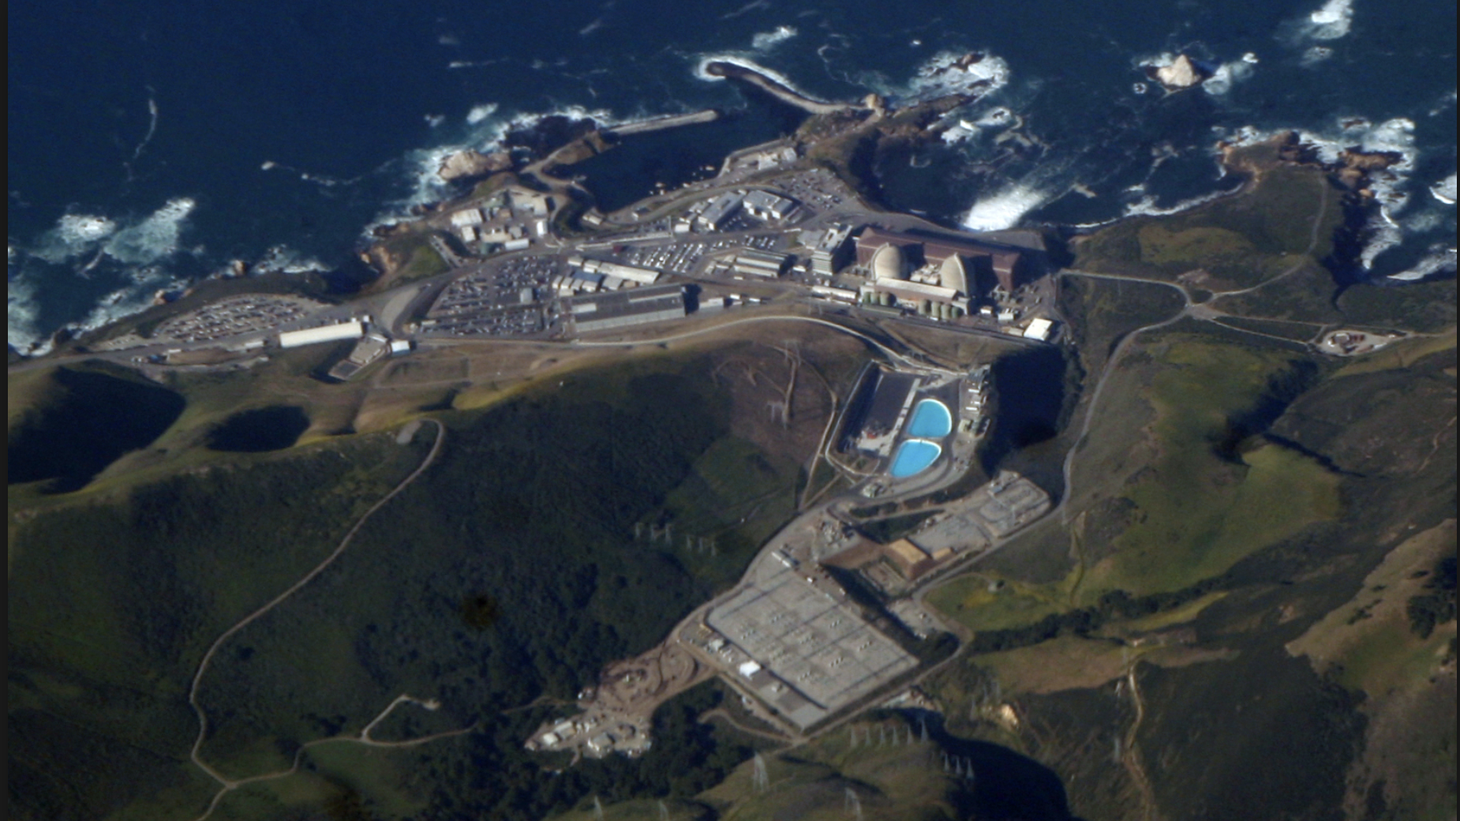 Diablo Canyon nuclear power station currently provides about 9% of California's energy needs.